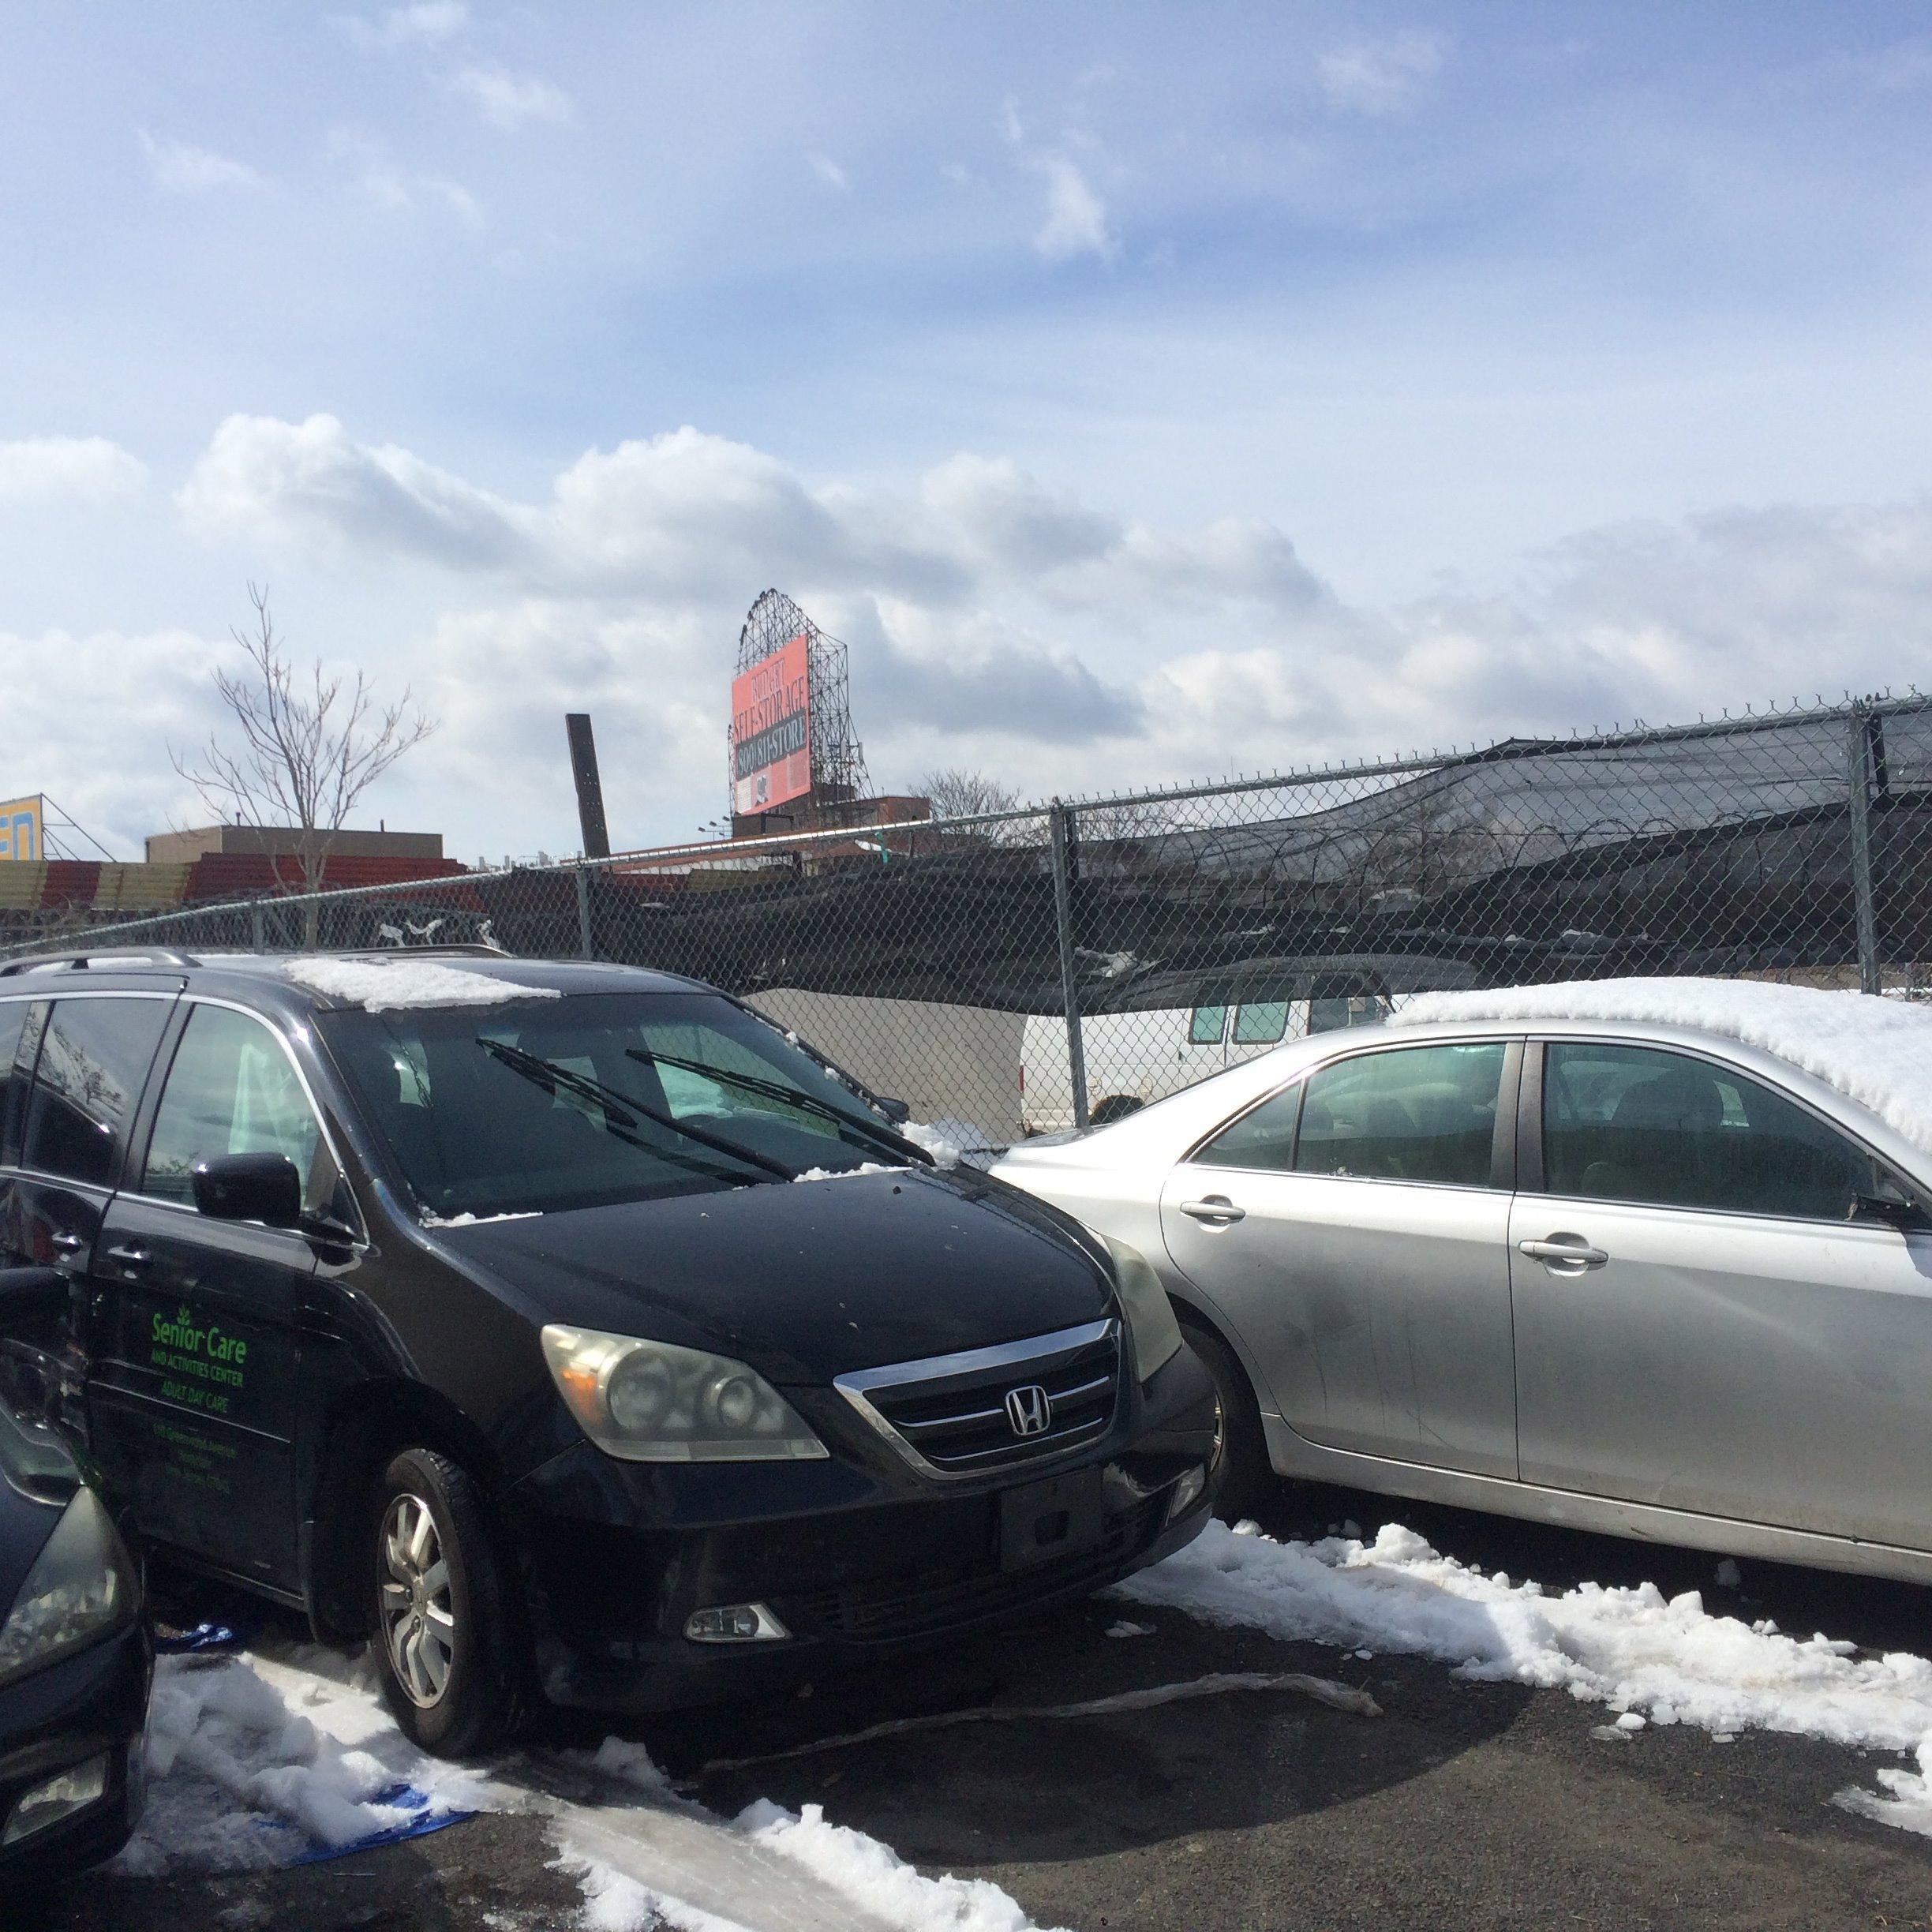 Junk Cars For Cash Nj >> Car For Cash Auto Buyer Junk Cars 4 Cash Newark Nj